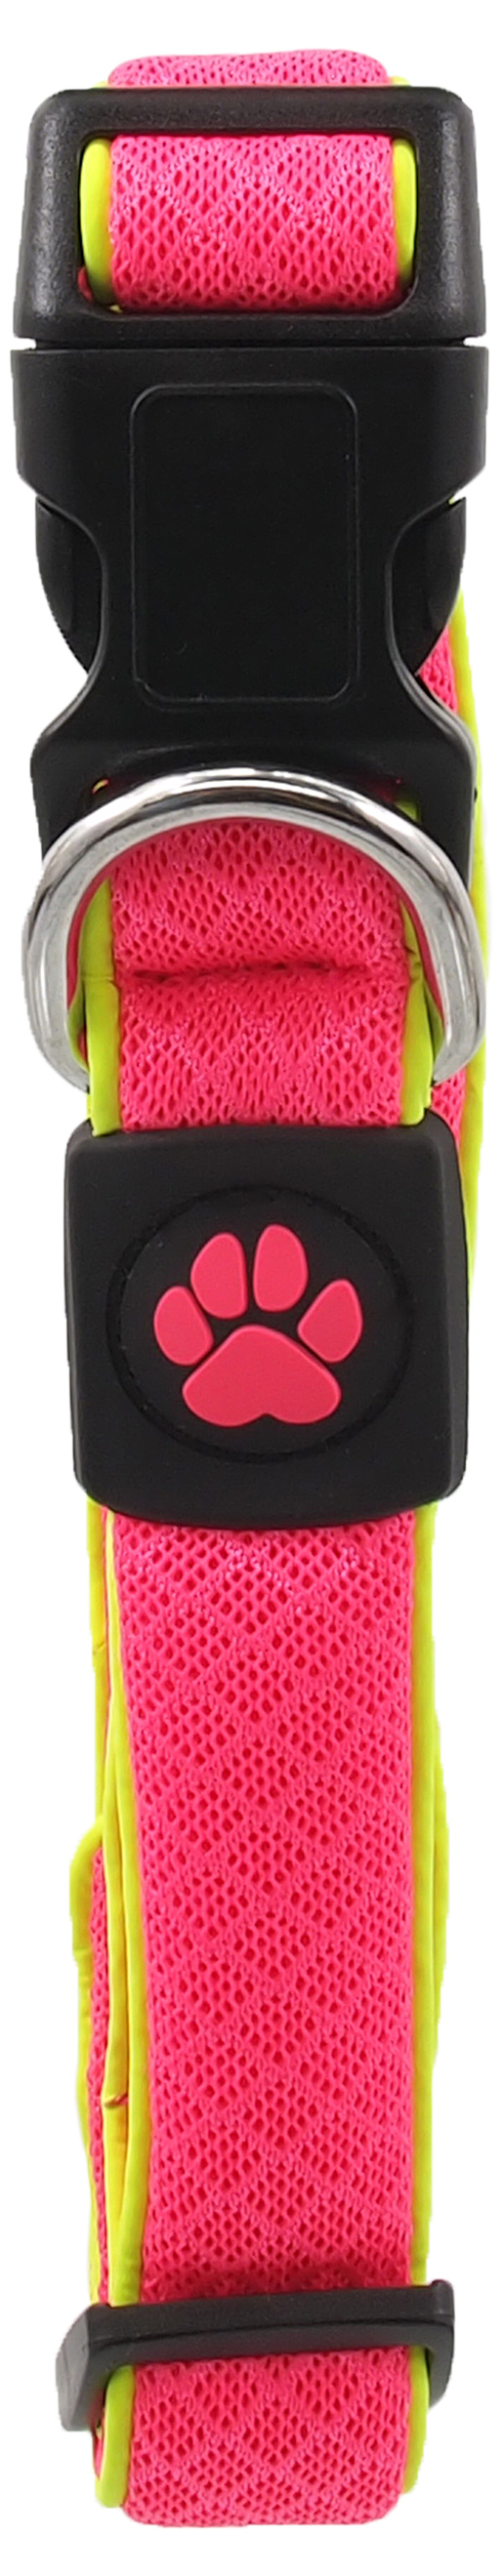 Dog Fantasy Obojek Active Dog Fluffy Reflective M růžový 2,5x35-51cm